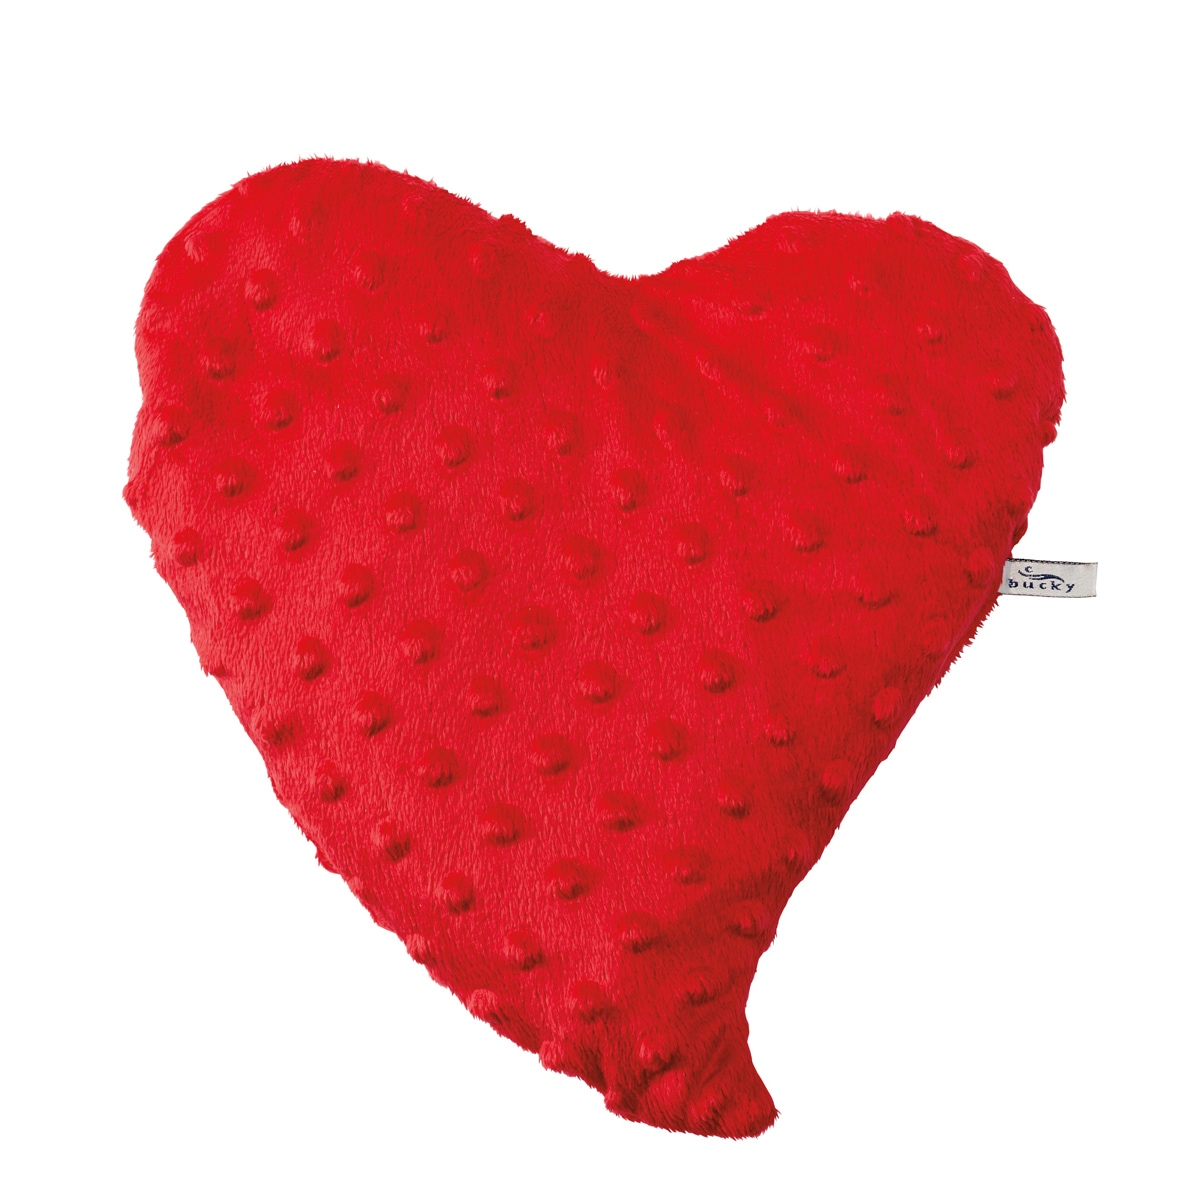 Bucky Products Spa Hot & Cold Therapy Heartwarmer Travel Pillow In Red